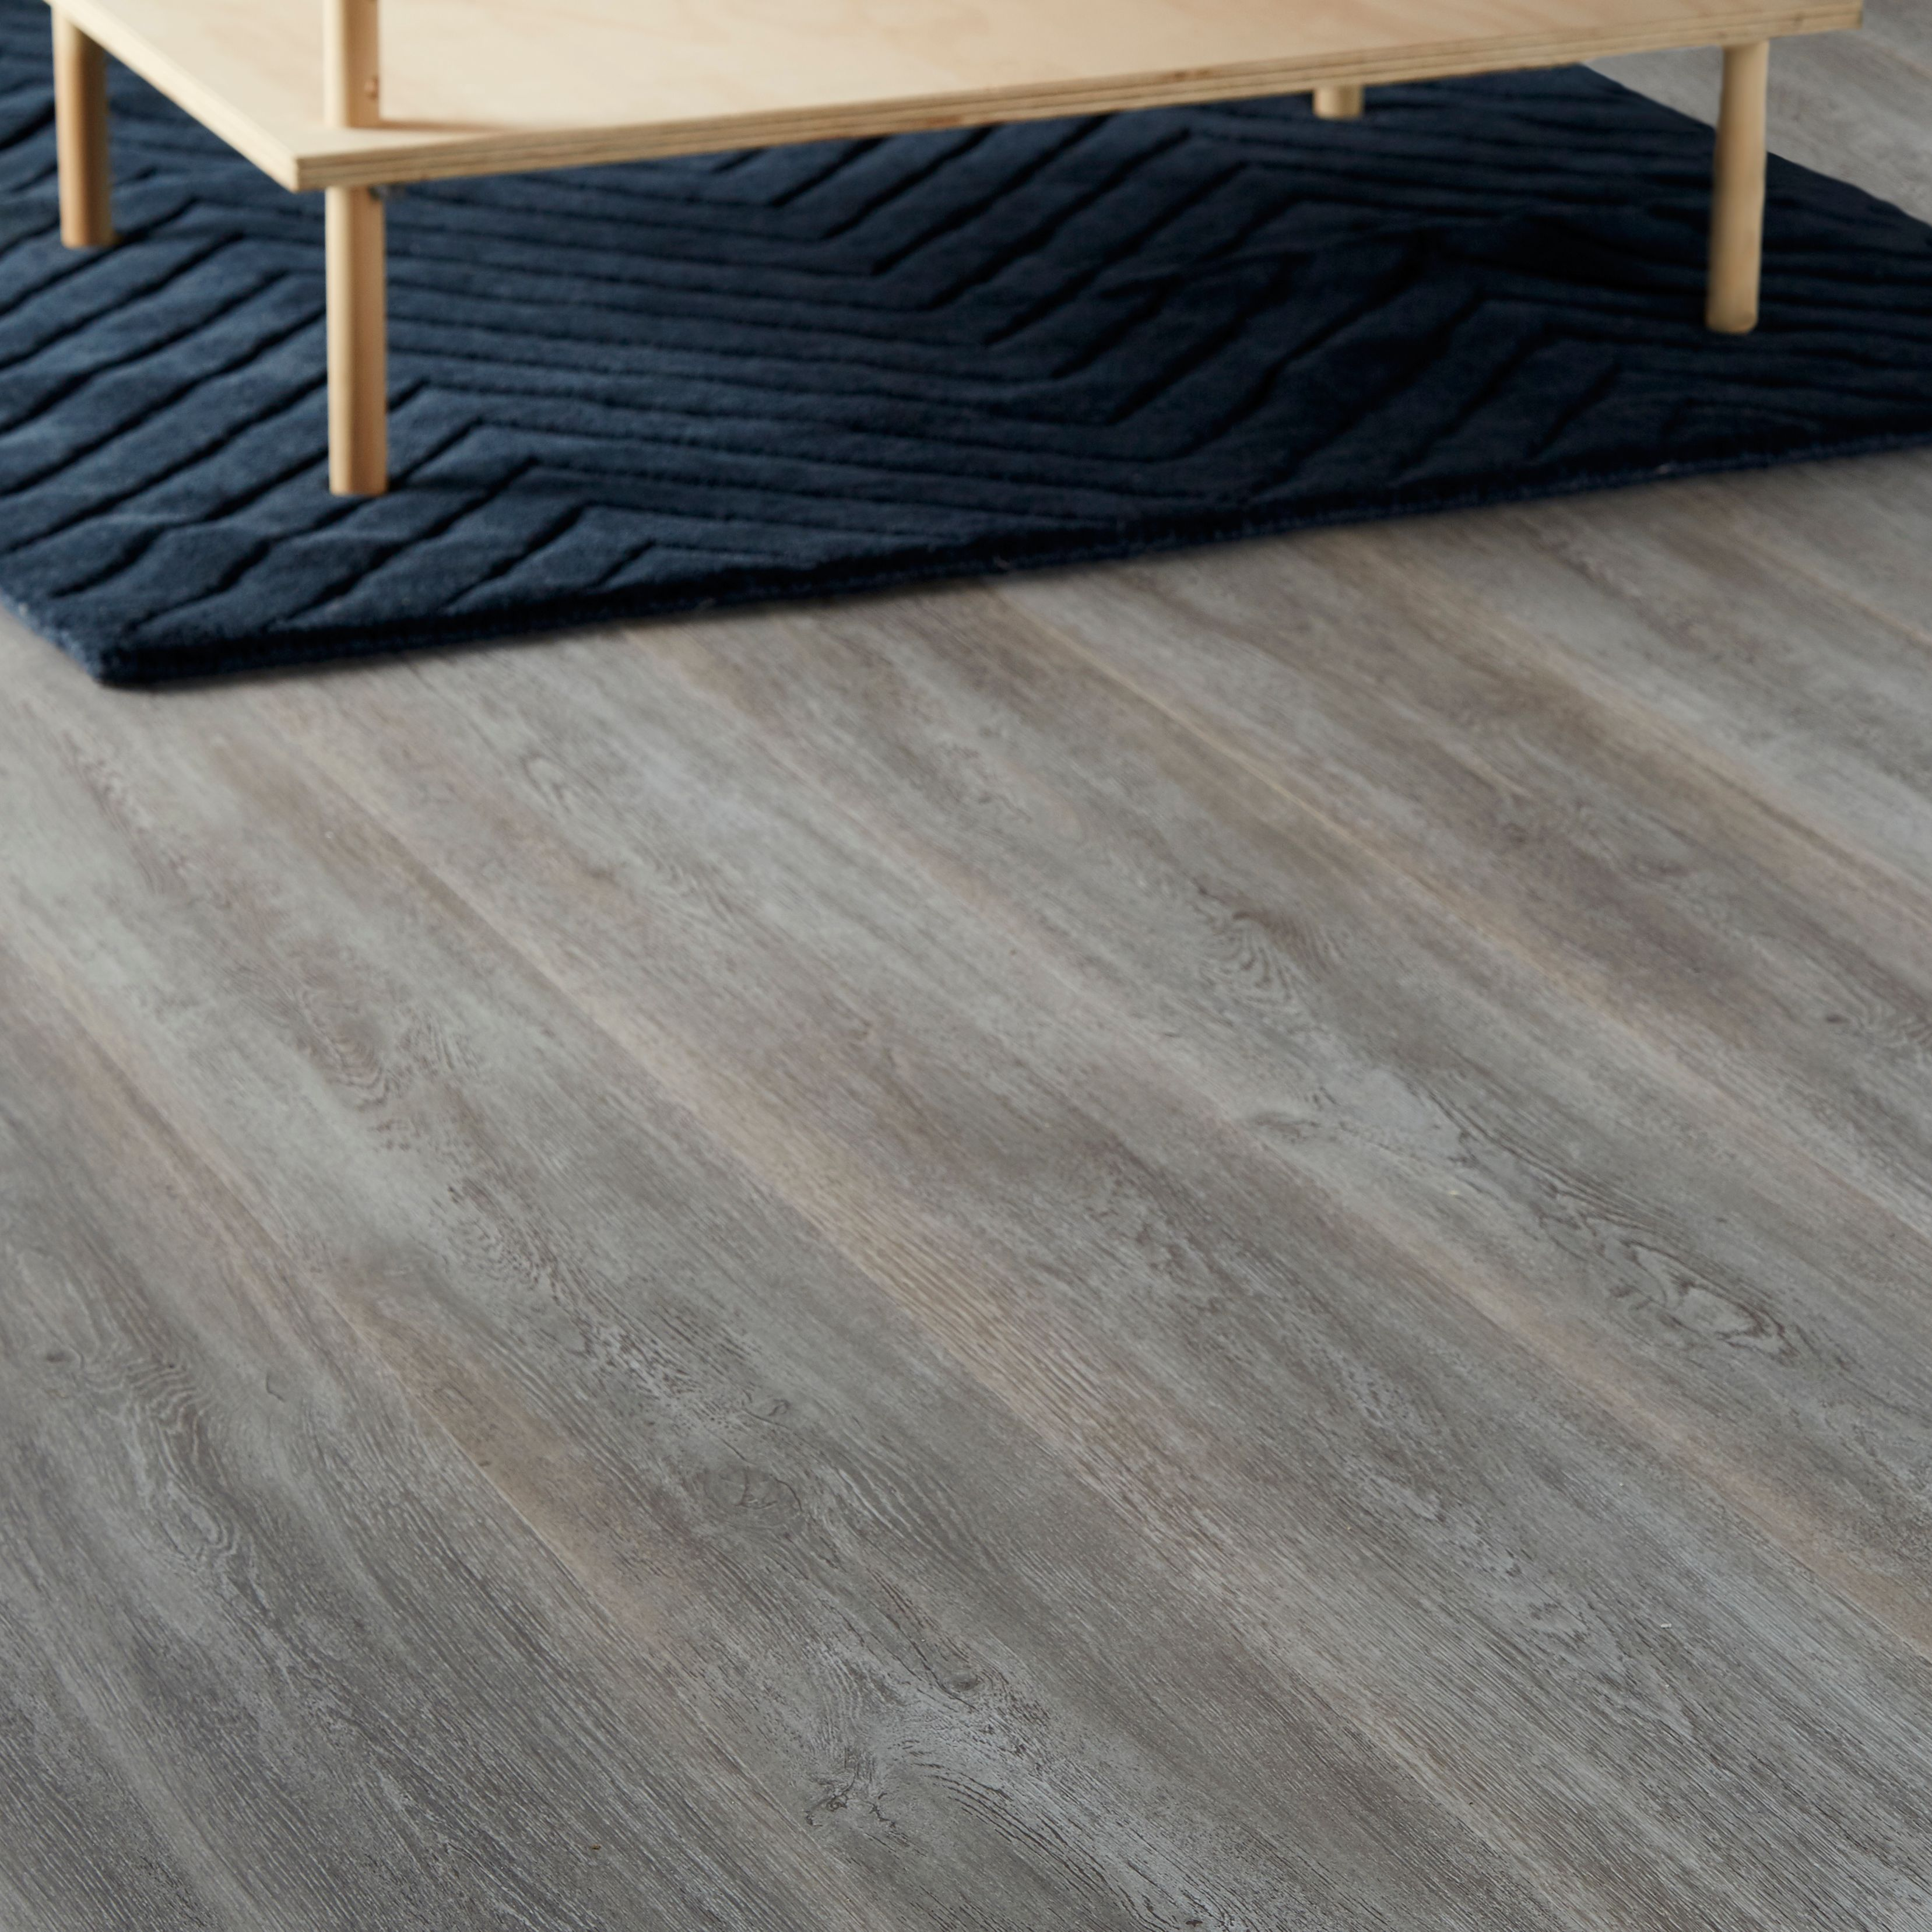 Bundaberg Grey Oak Effect Laminate Flooring 2 467 M² Pack Departments Diy At B Q